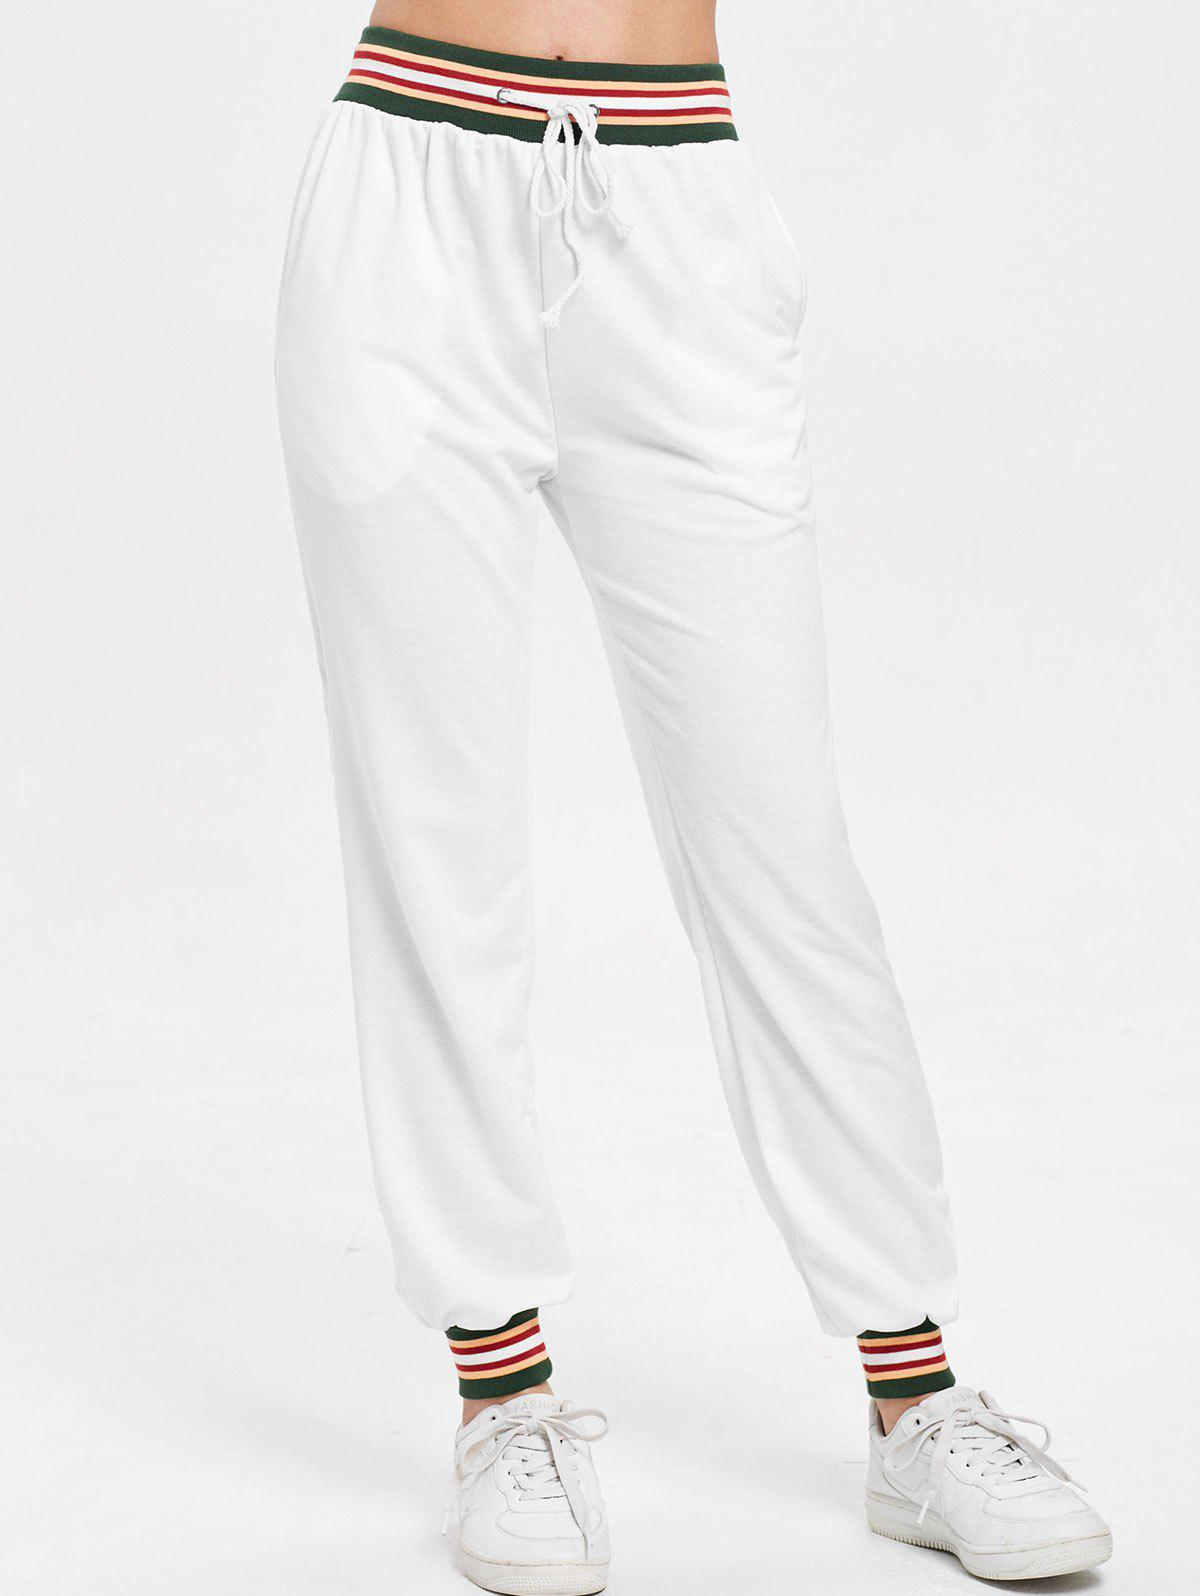 Hot Striped Drawstring Pants